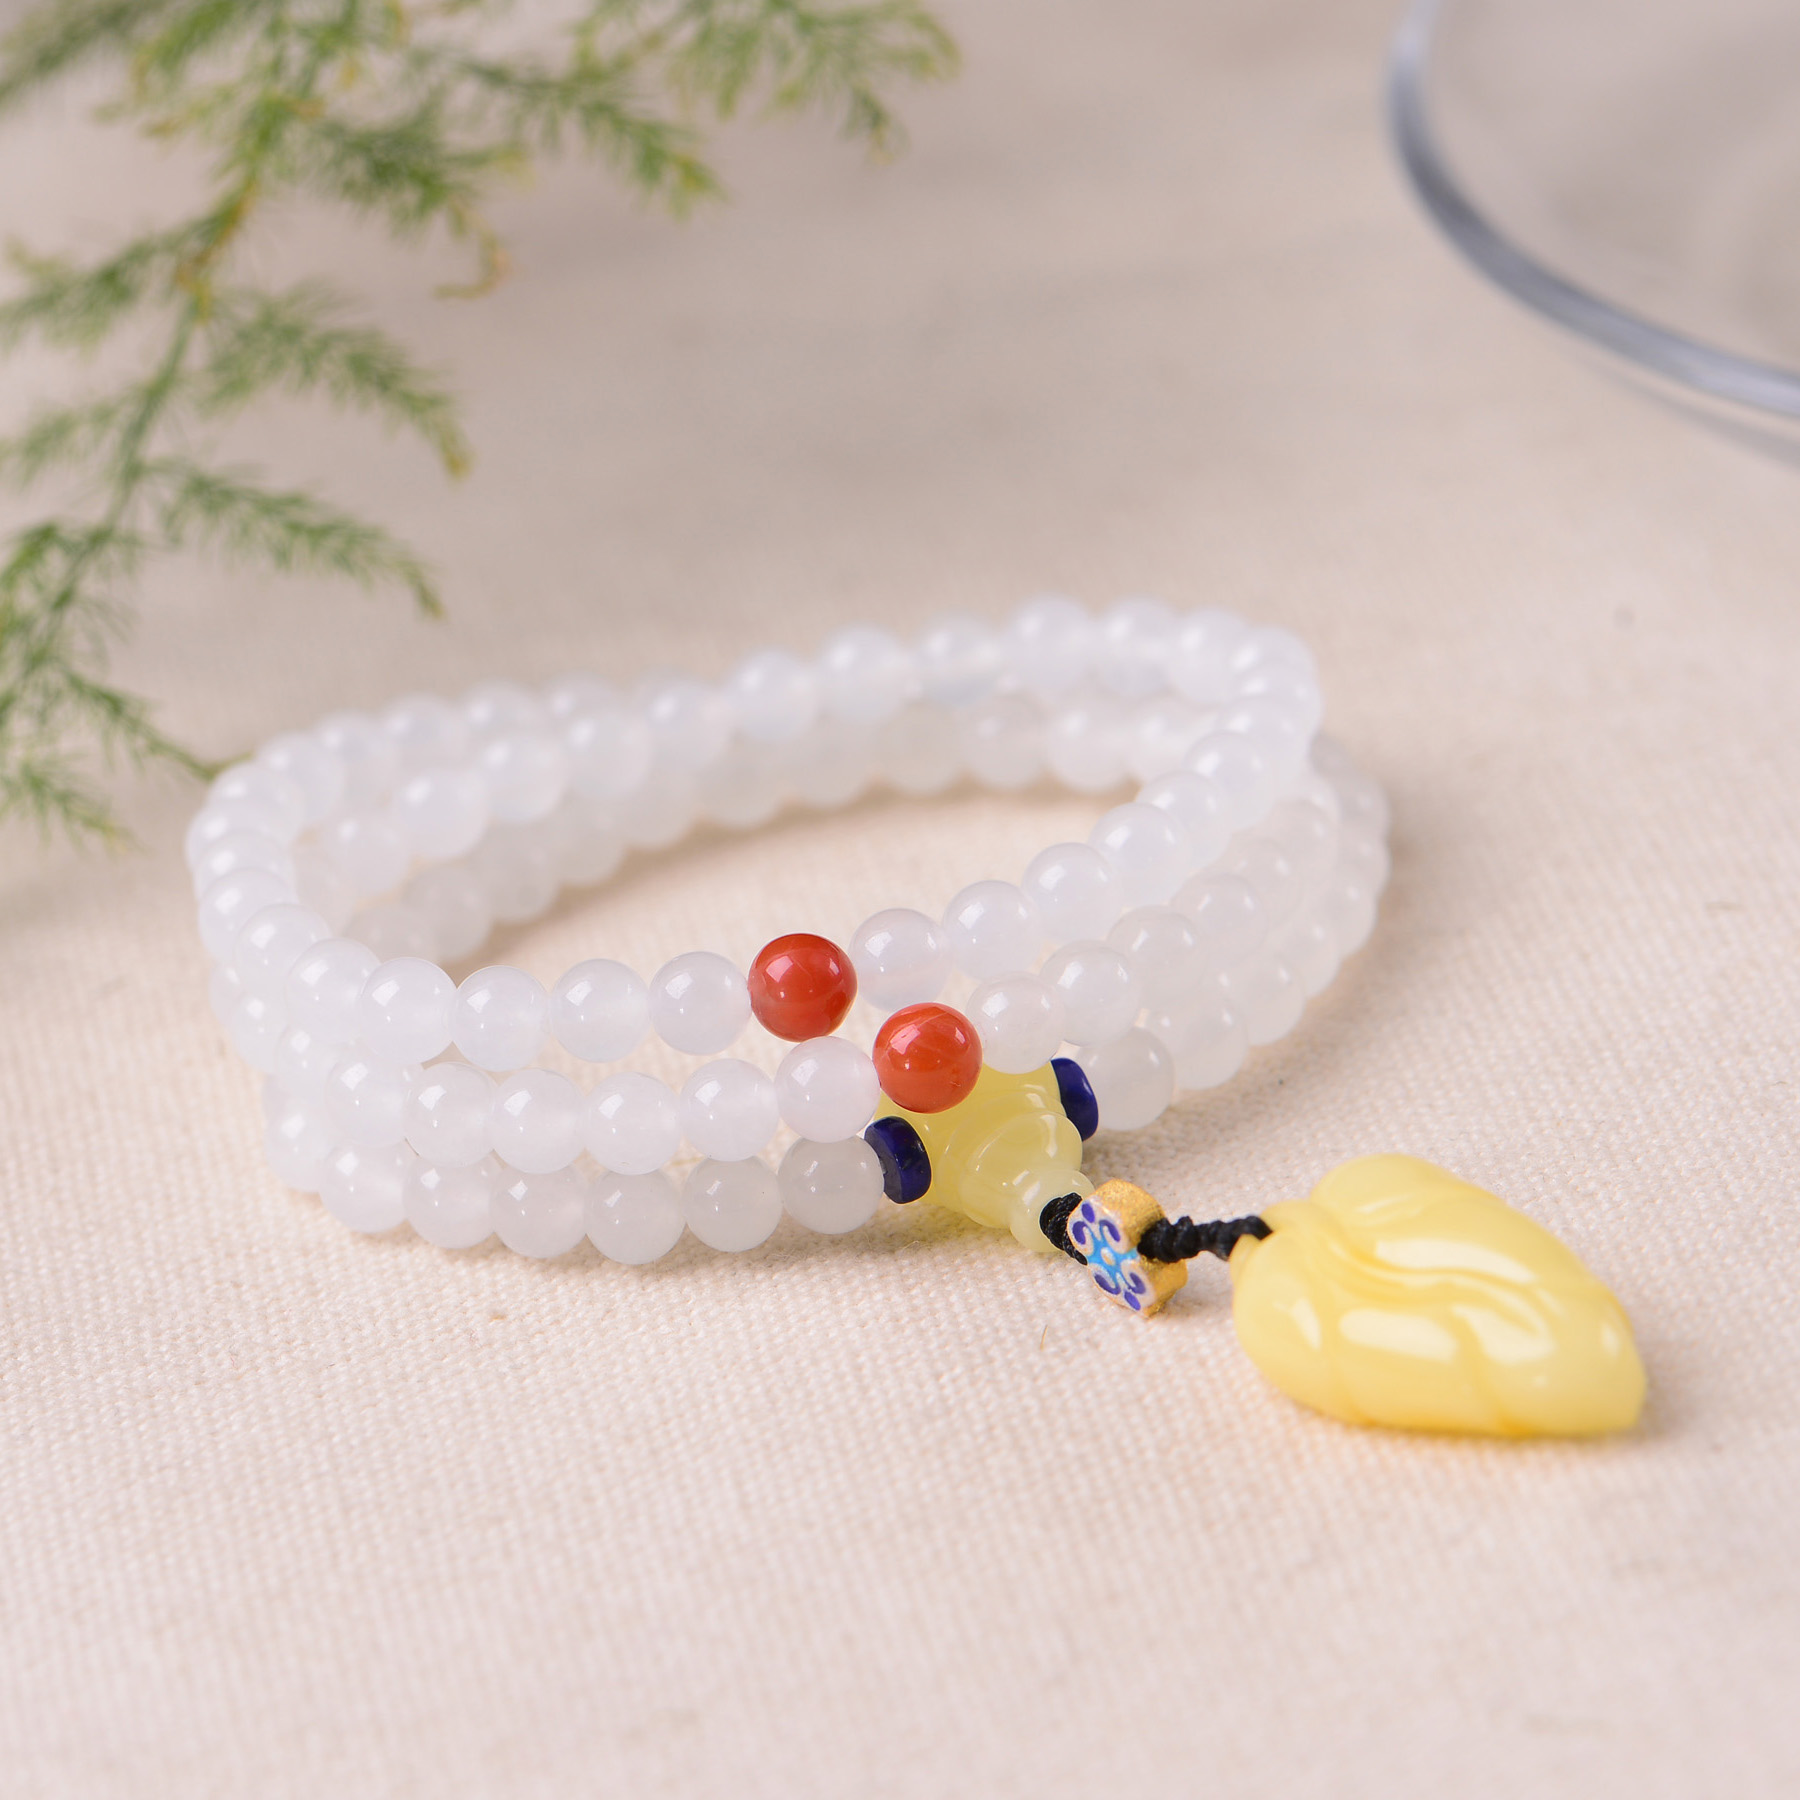 Handmade Authentic Hetian Crystal Beads Bracelets 6mm